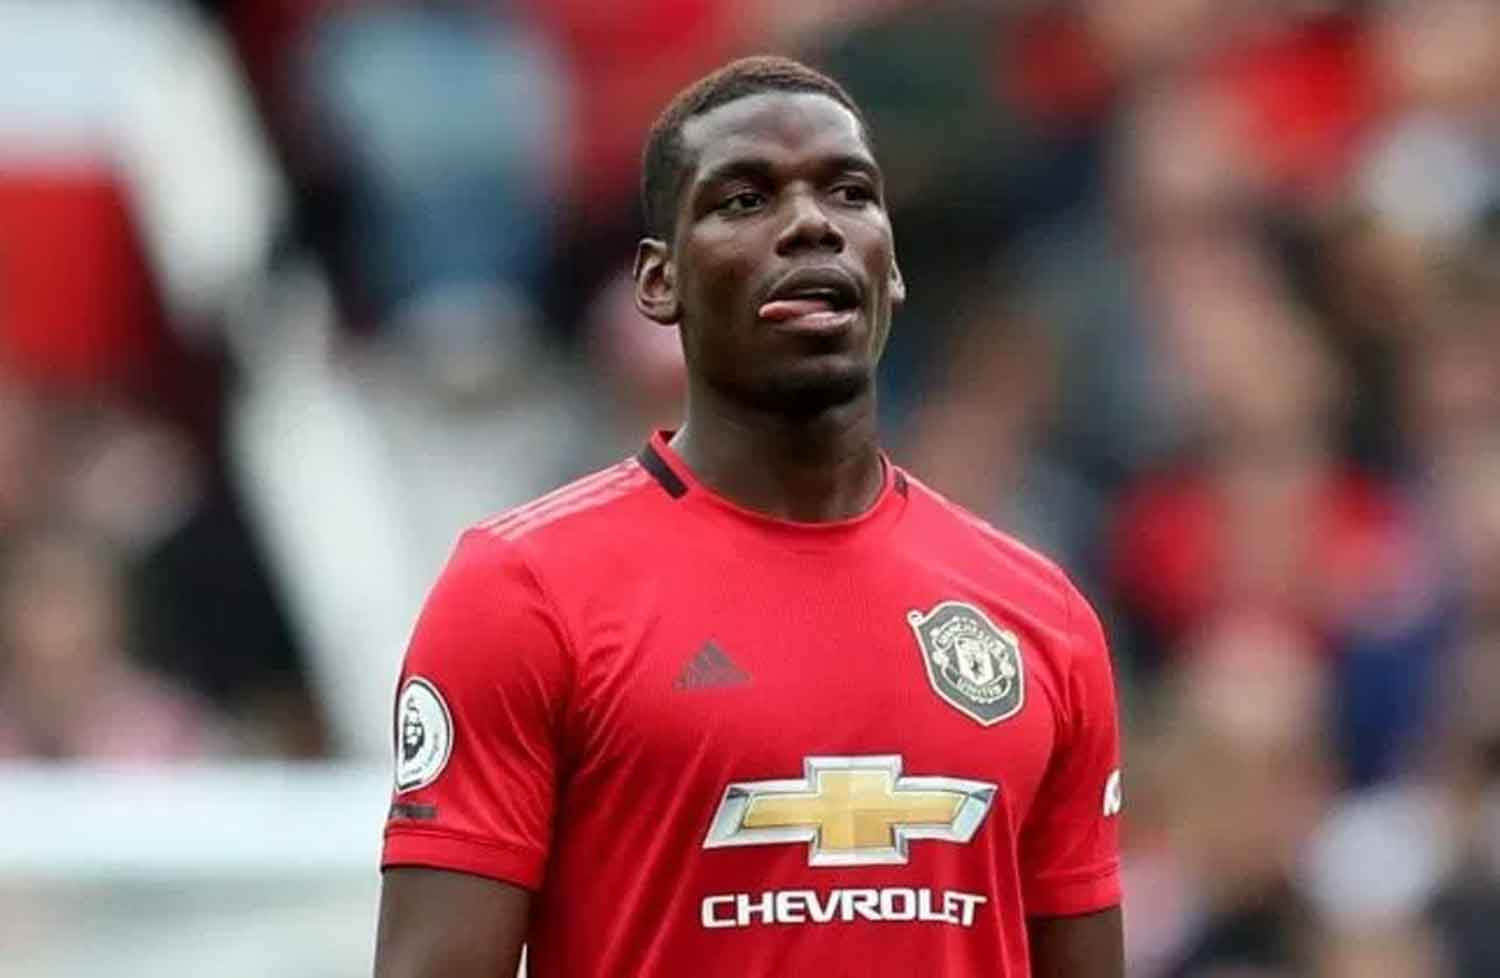 Paul Pogba, Juventus, Man United